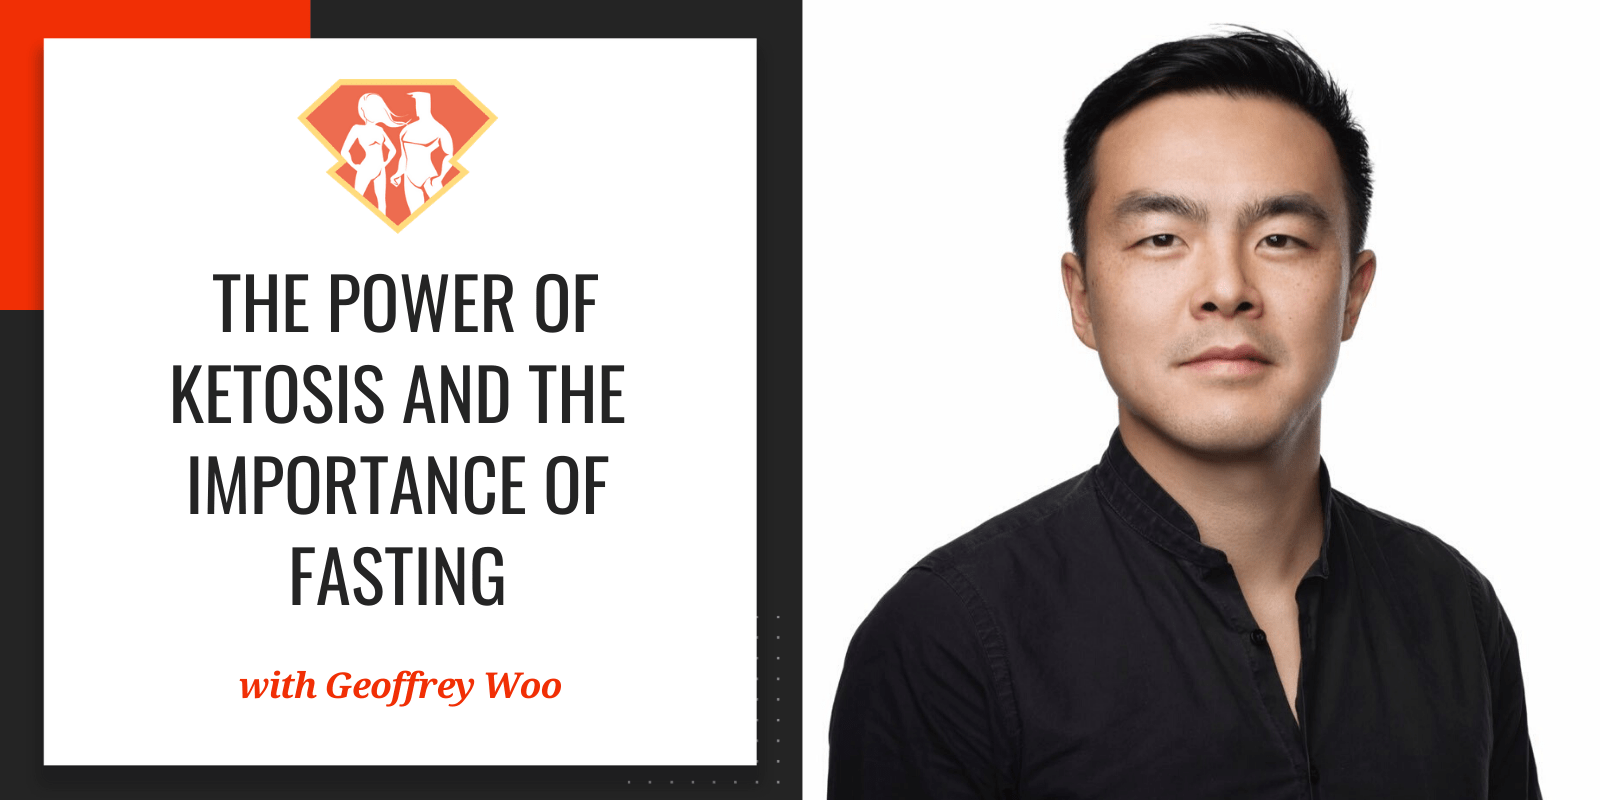 Geoffrey Woo On The Power Of Ketosis And The Importance Of Fasting